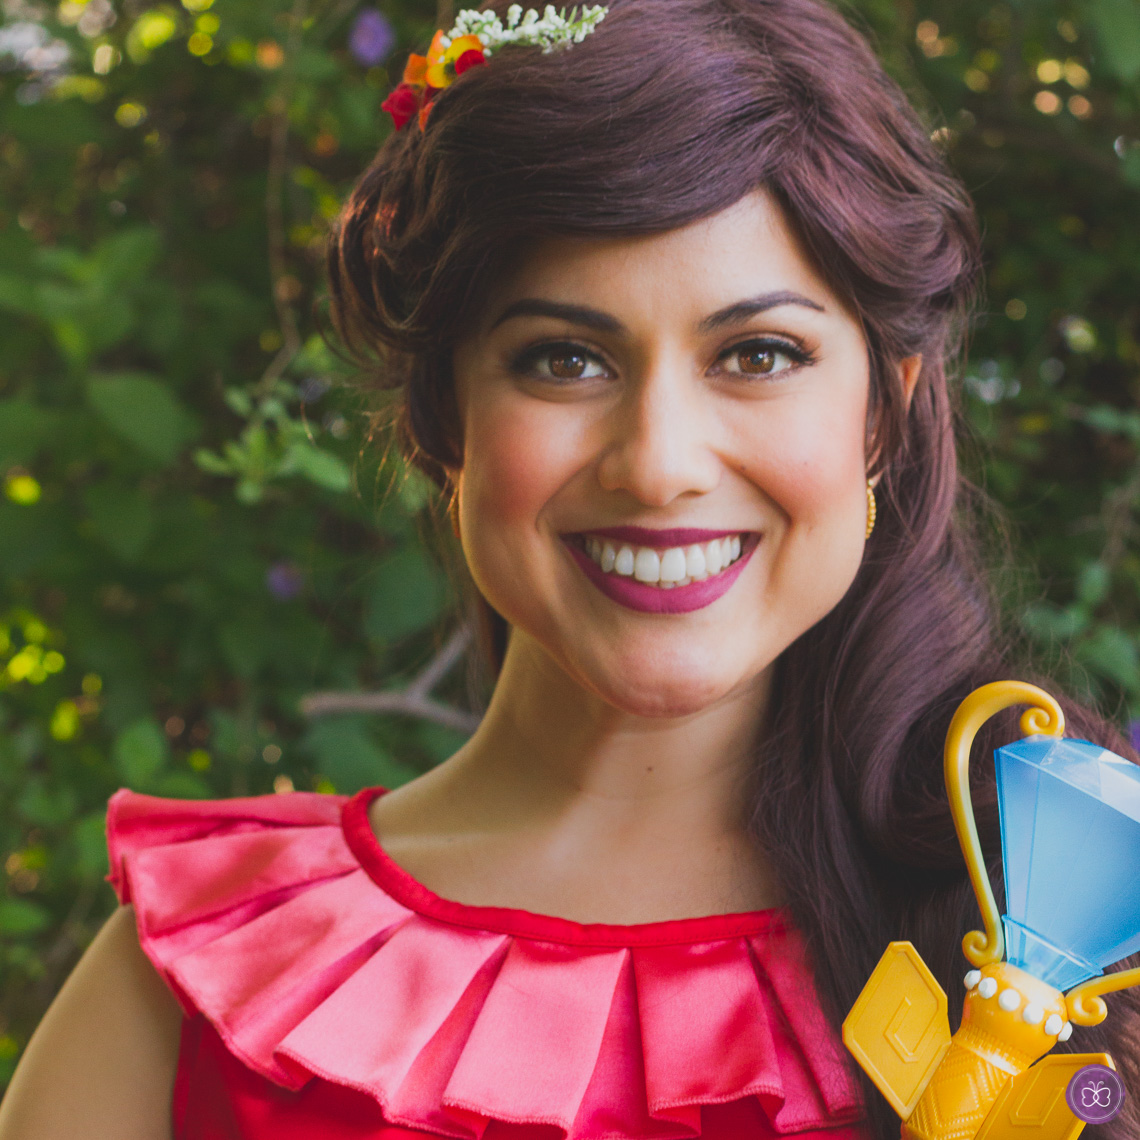 Elena of Avalor princess party character Los Angeles